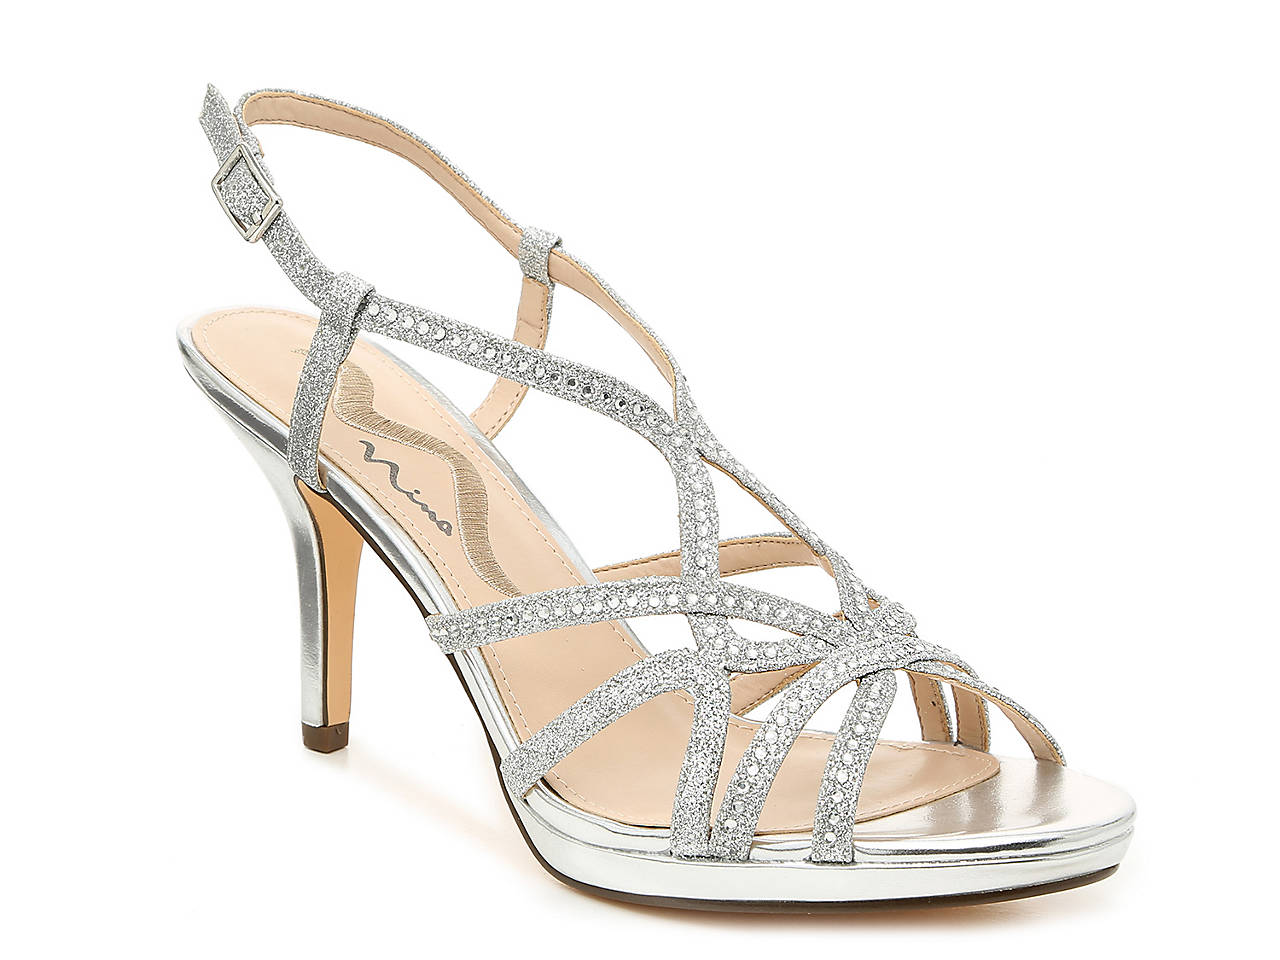 4f5ecfece5 Nina Veralee Sandal Women s Shoes